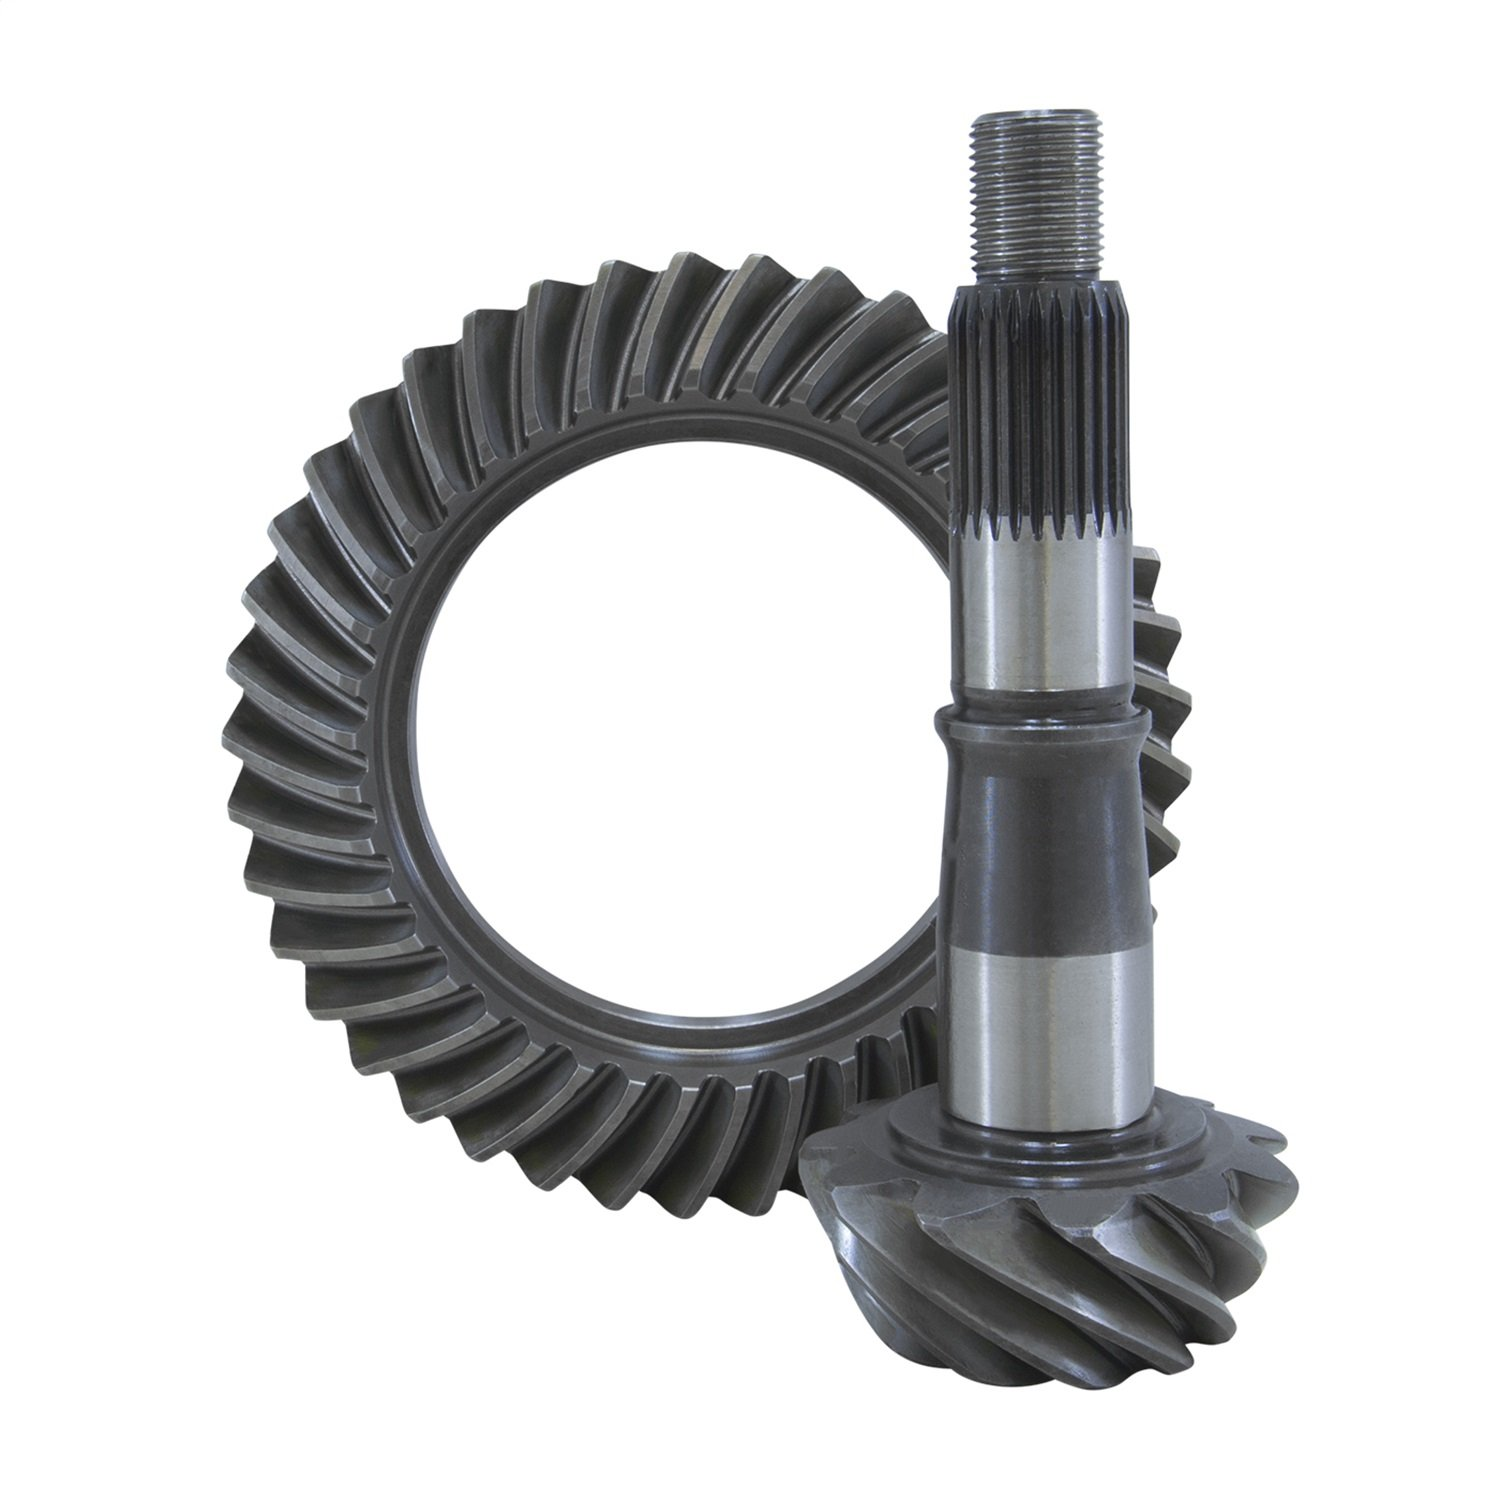 USA Standard Gear (ZG GM7.5-323) Ring & Pinion Gear Set for GM 7.5 Differential